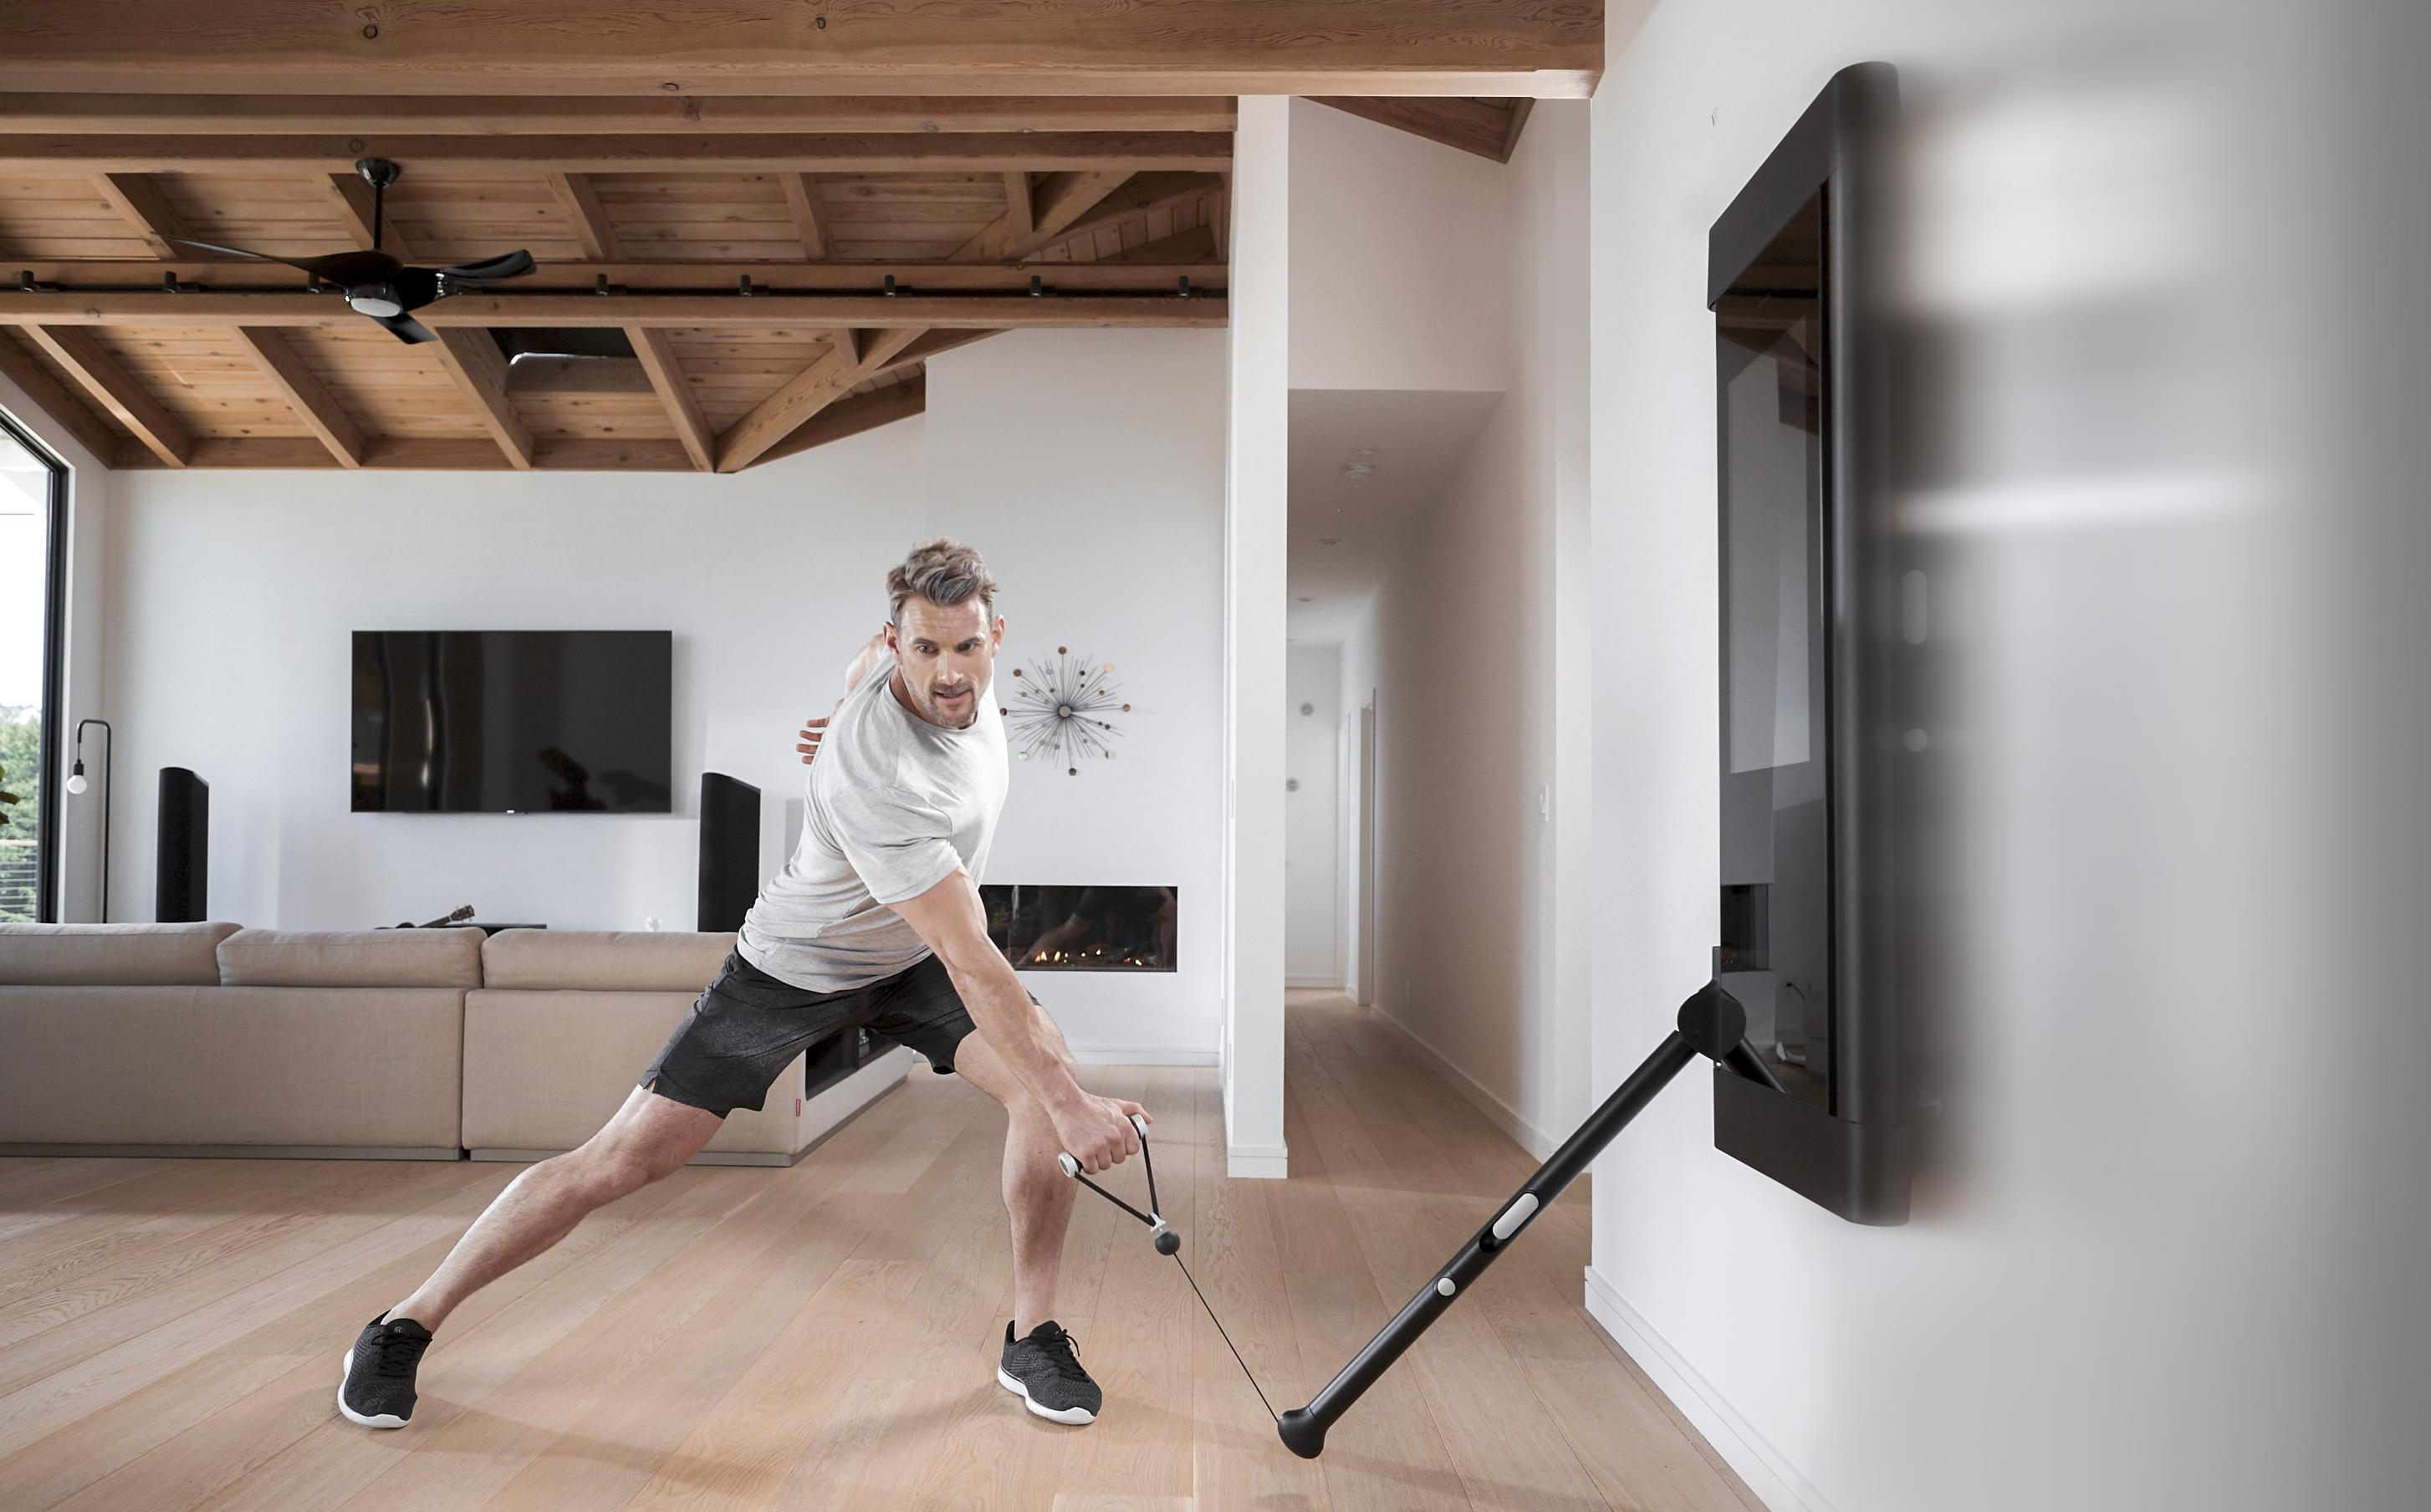 Tonal Home re-imagines the home gym with a massive display, sleek design